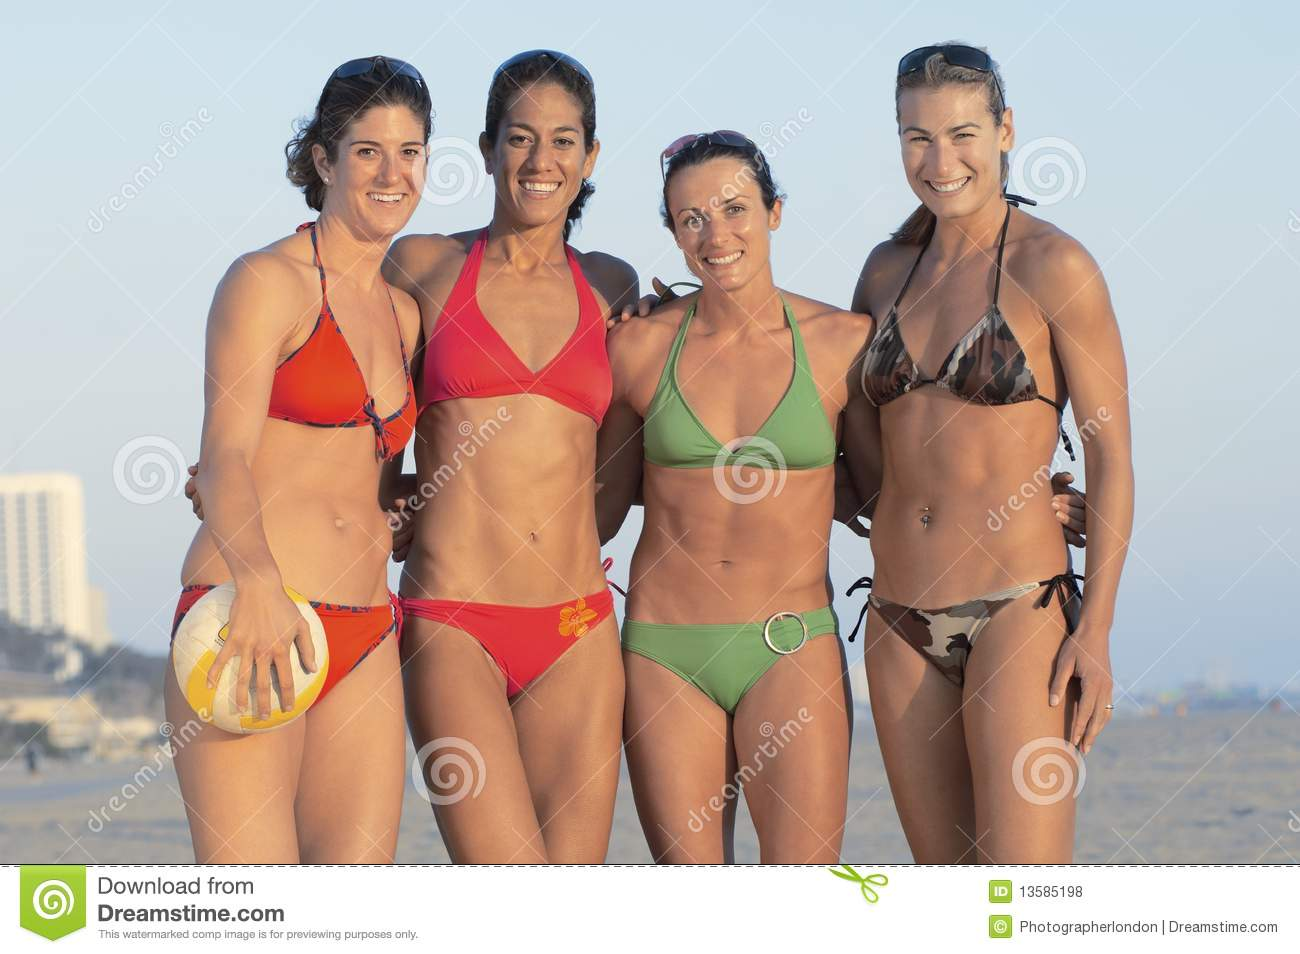 Sexy beach volleyball payers was